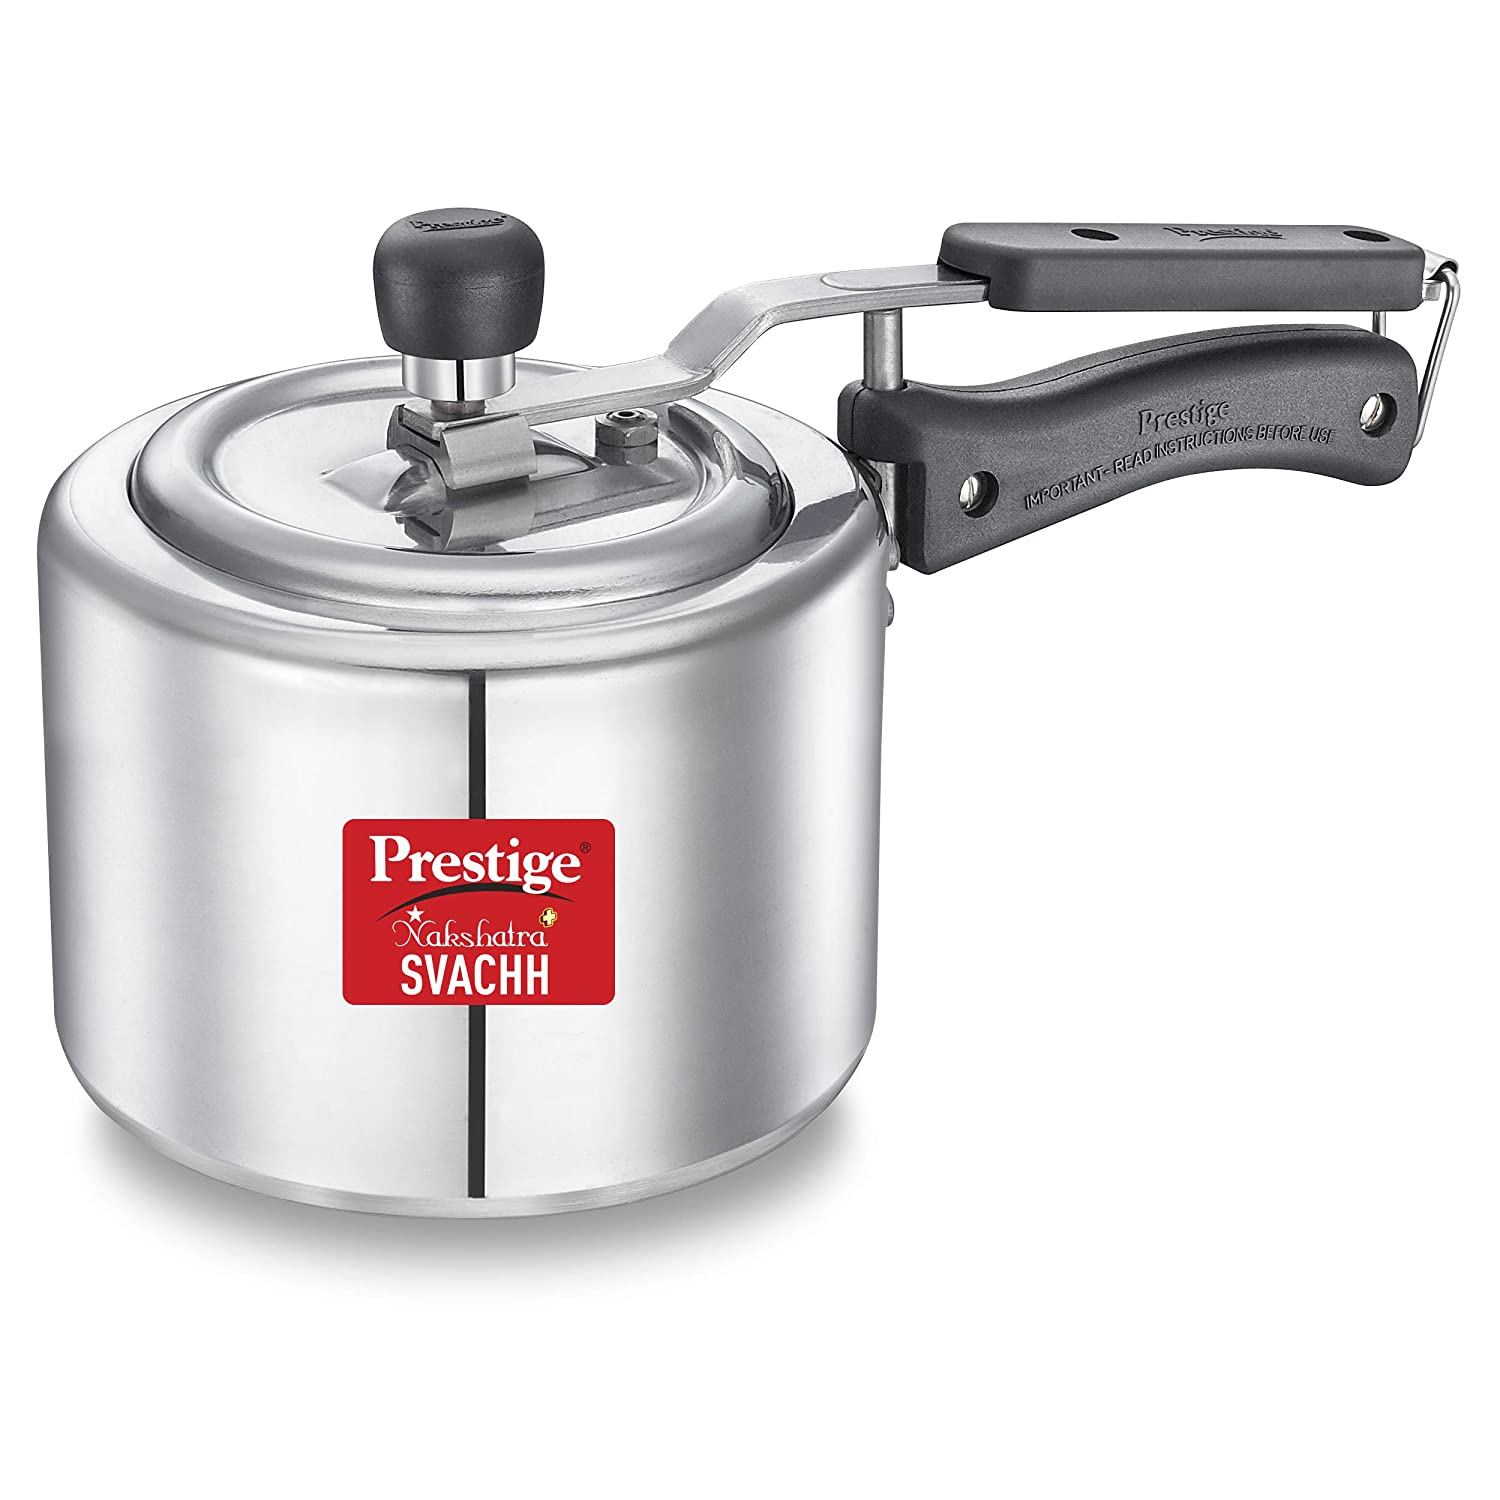 Prestige Svachh, 10732, 2 L, Straight Wall Aluminium Pressure Cooker, with deep lid for Spillage Control